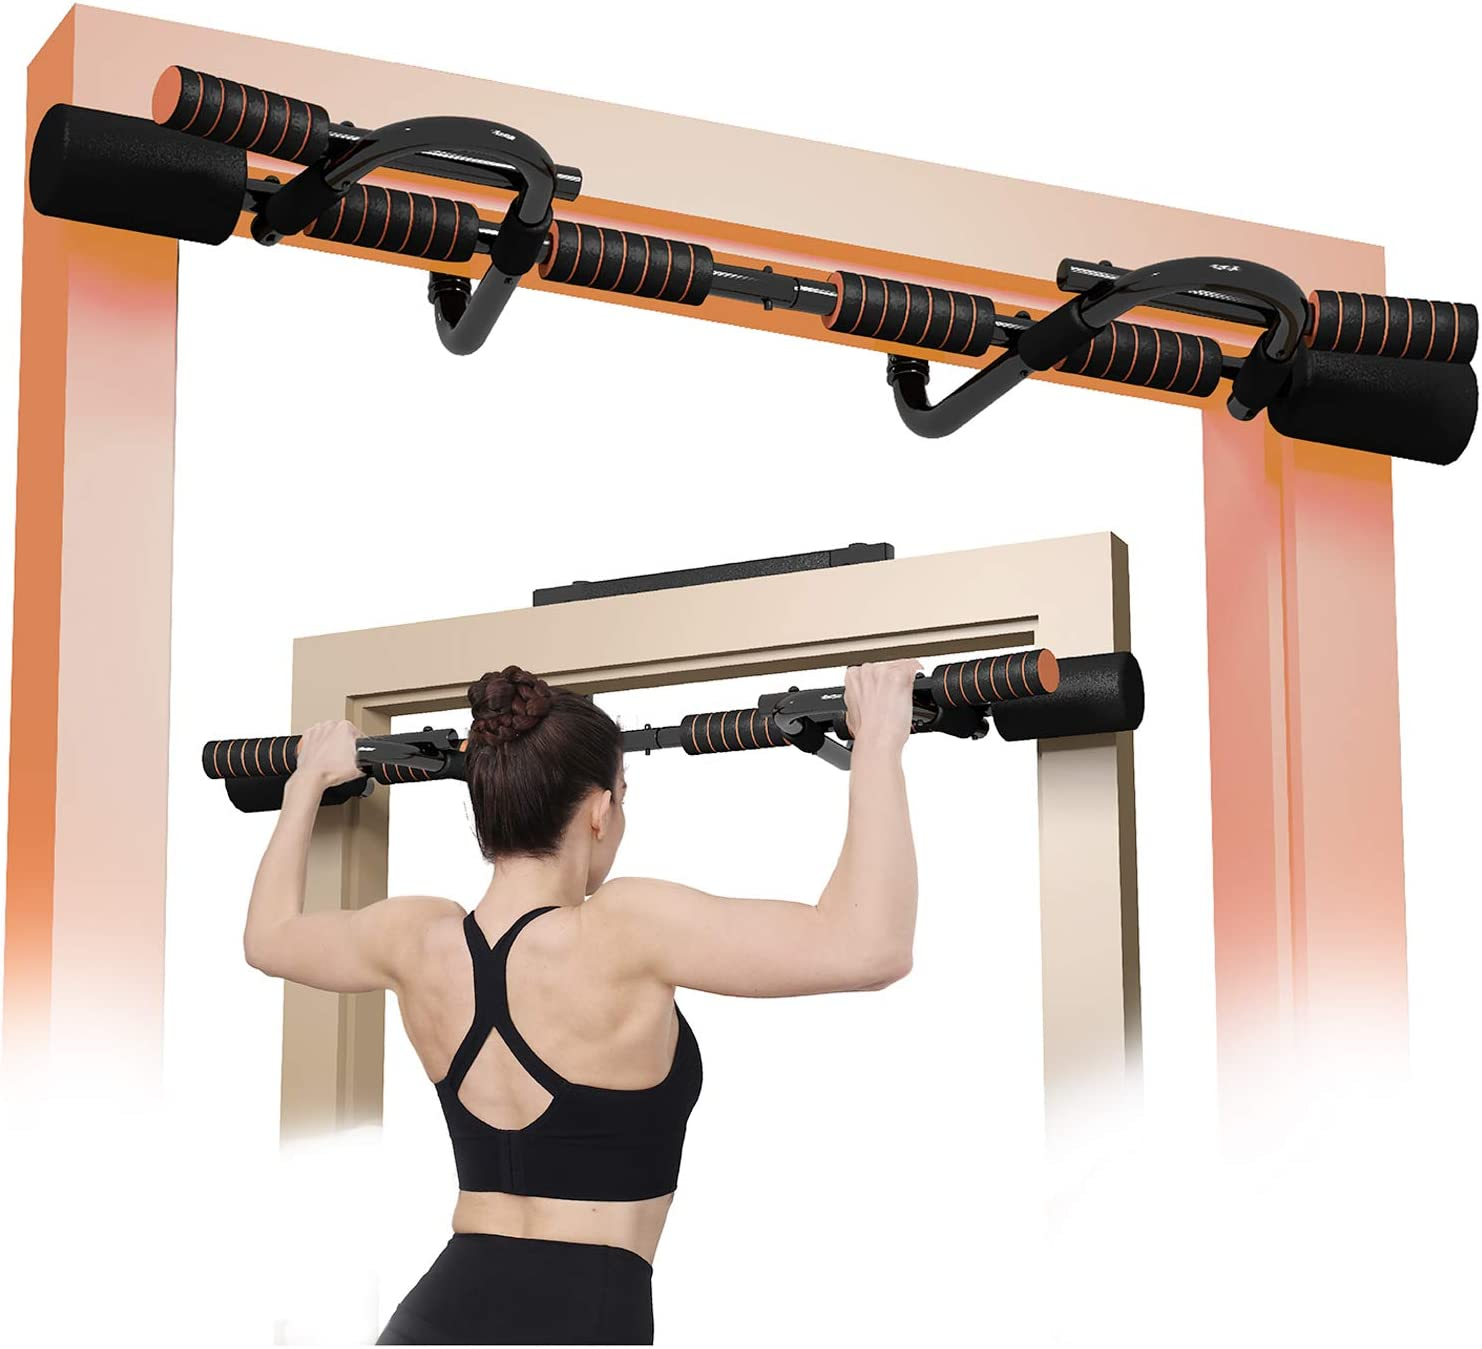 Doorway Pull Up Bar with Ergonomic Grip, Exercise Equipment Body Gym System No Screws Trainer, Multi-Grip Chin Up Bar & Exercise Bar & Home Workout